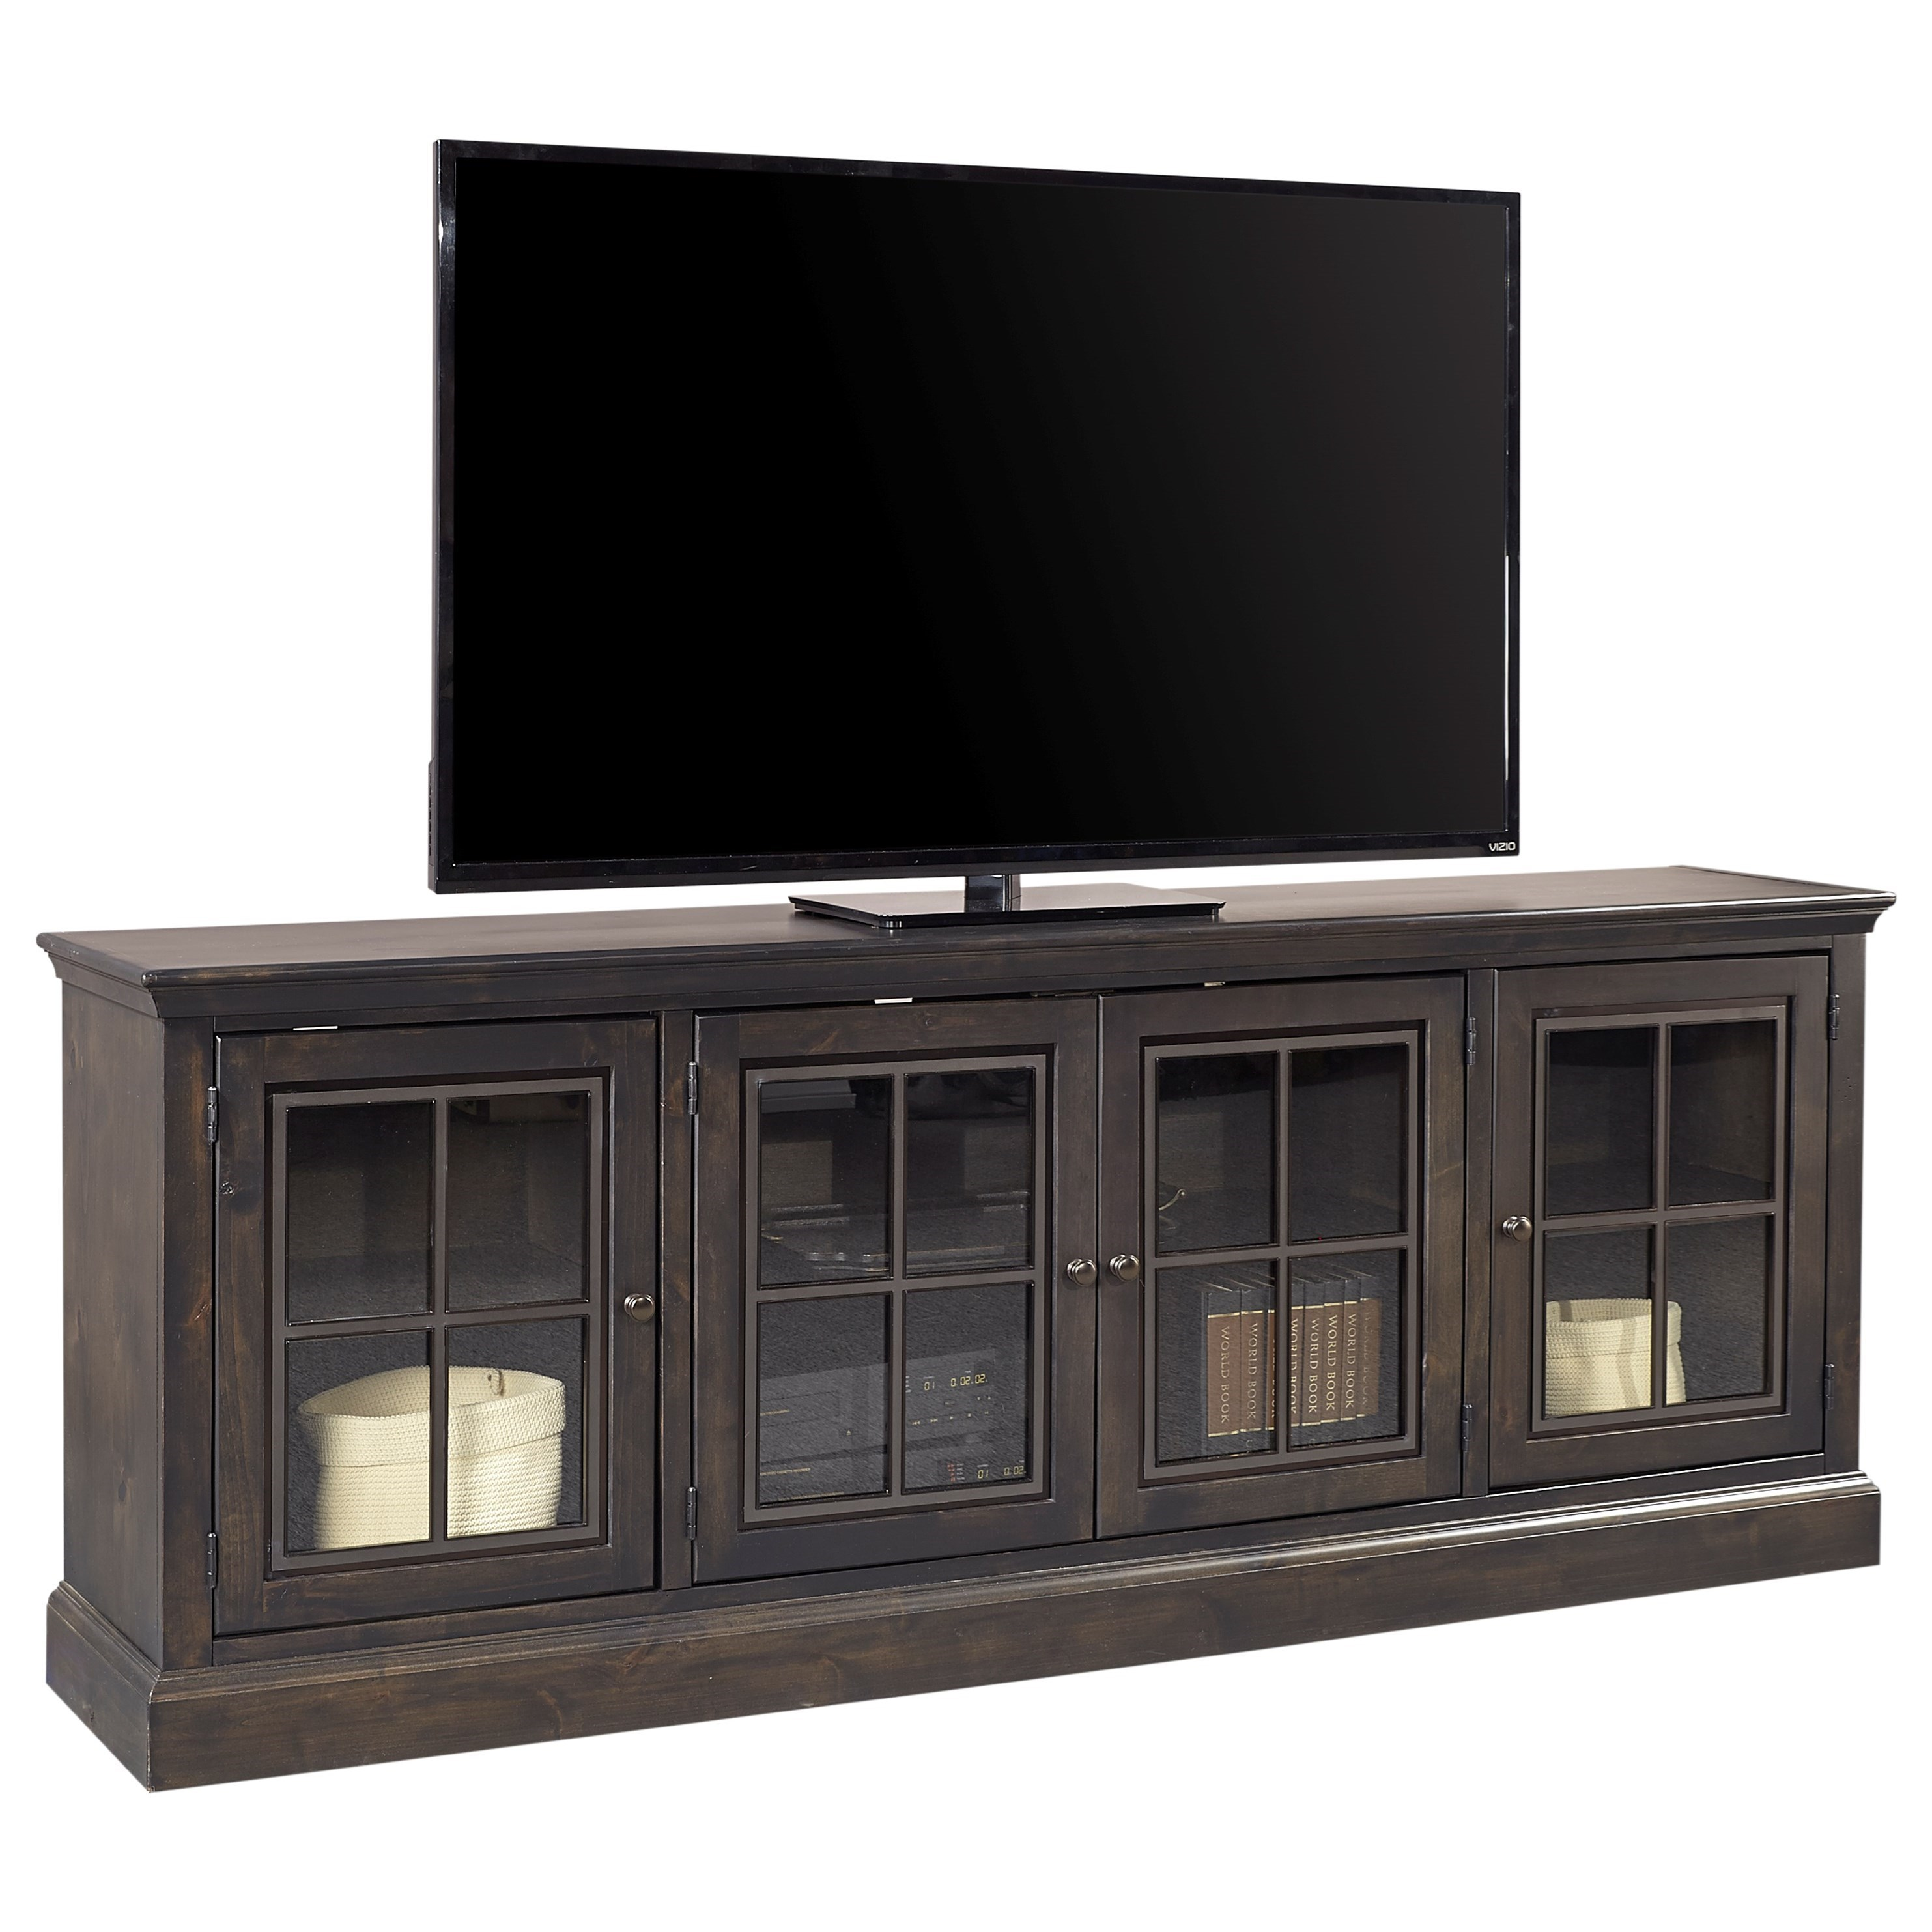 "Churchill 84"" TV Console by Aspenhome at Stoney Creek Furniture"